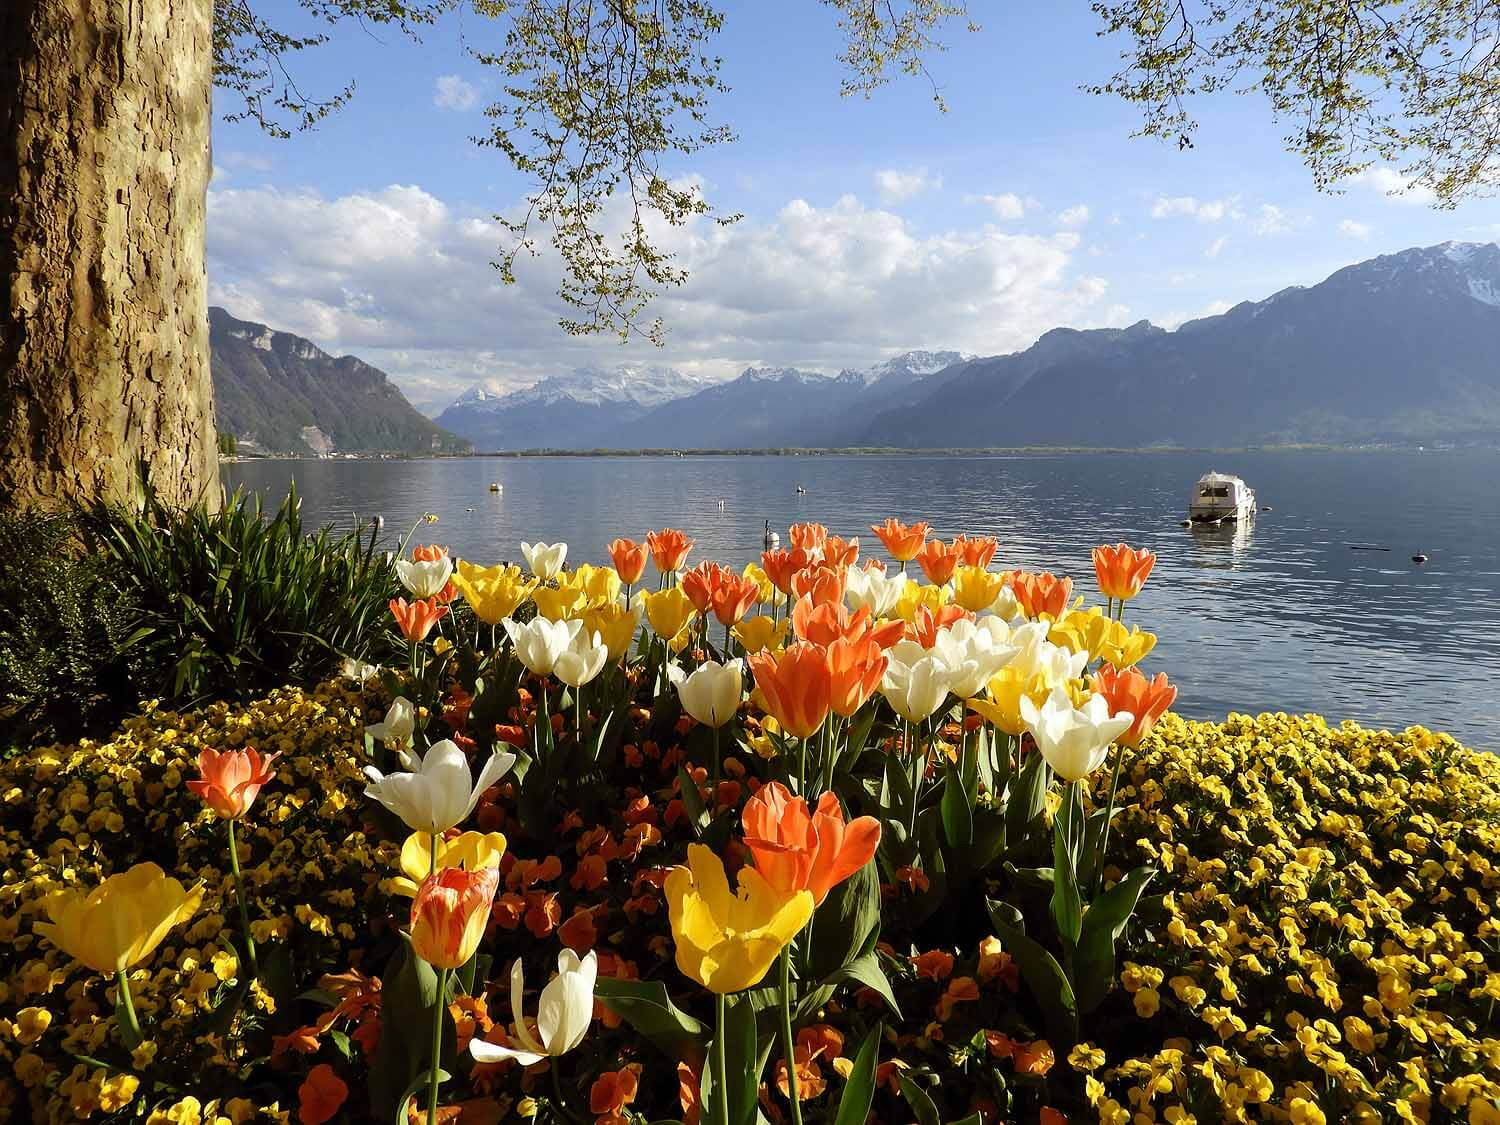 switzerland-montruex-tulips-lake-boat.jpg